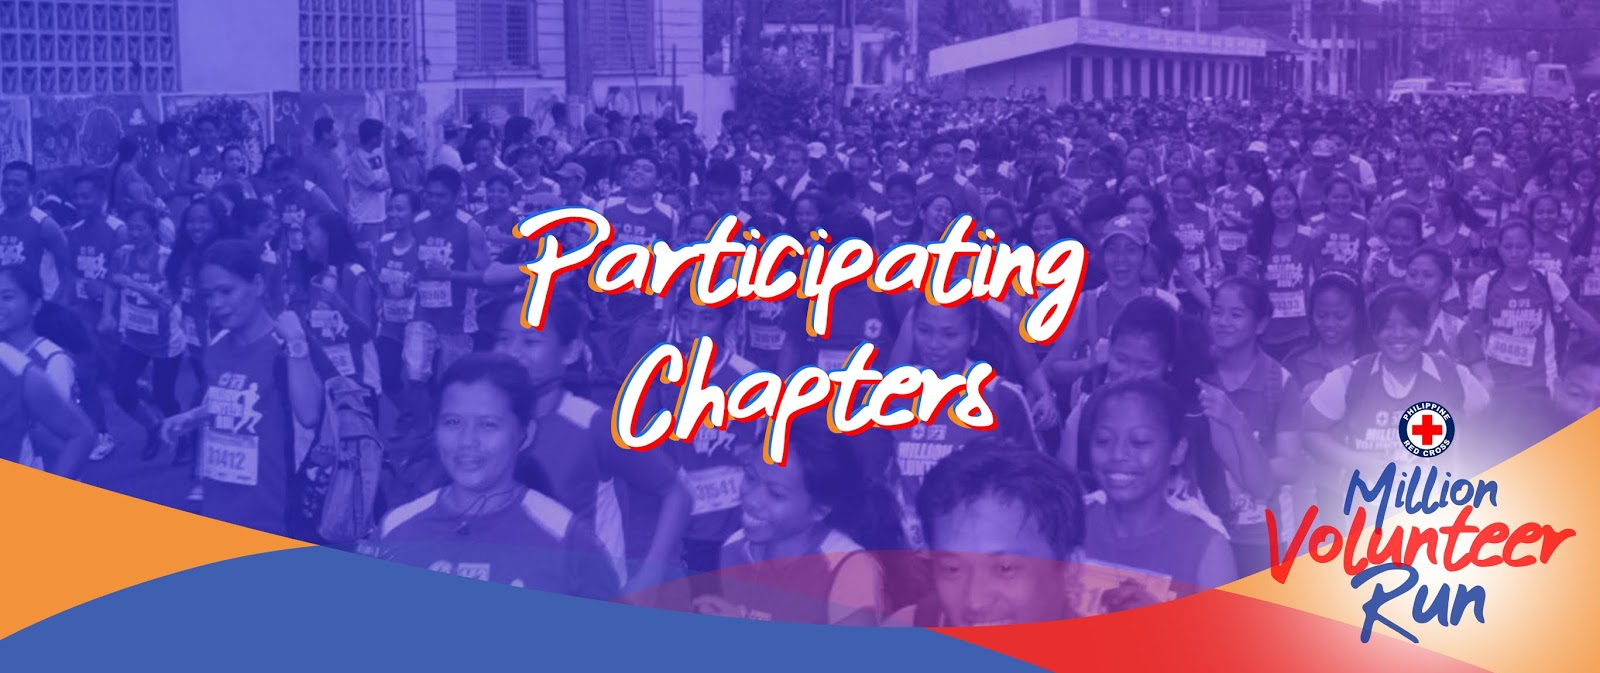 Participating Chapters